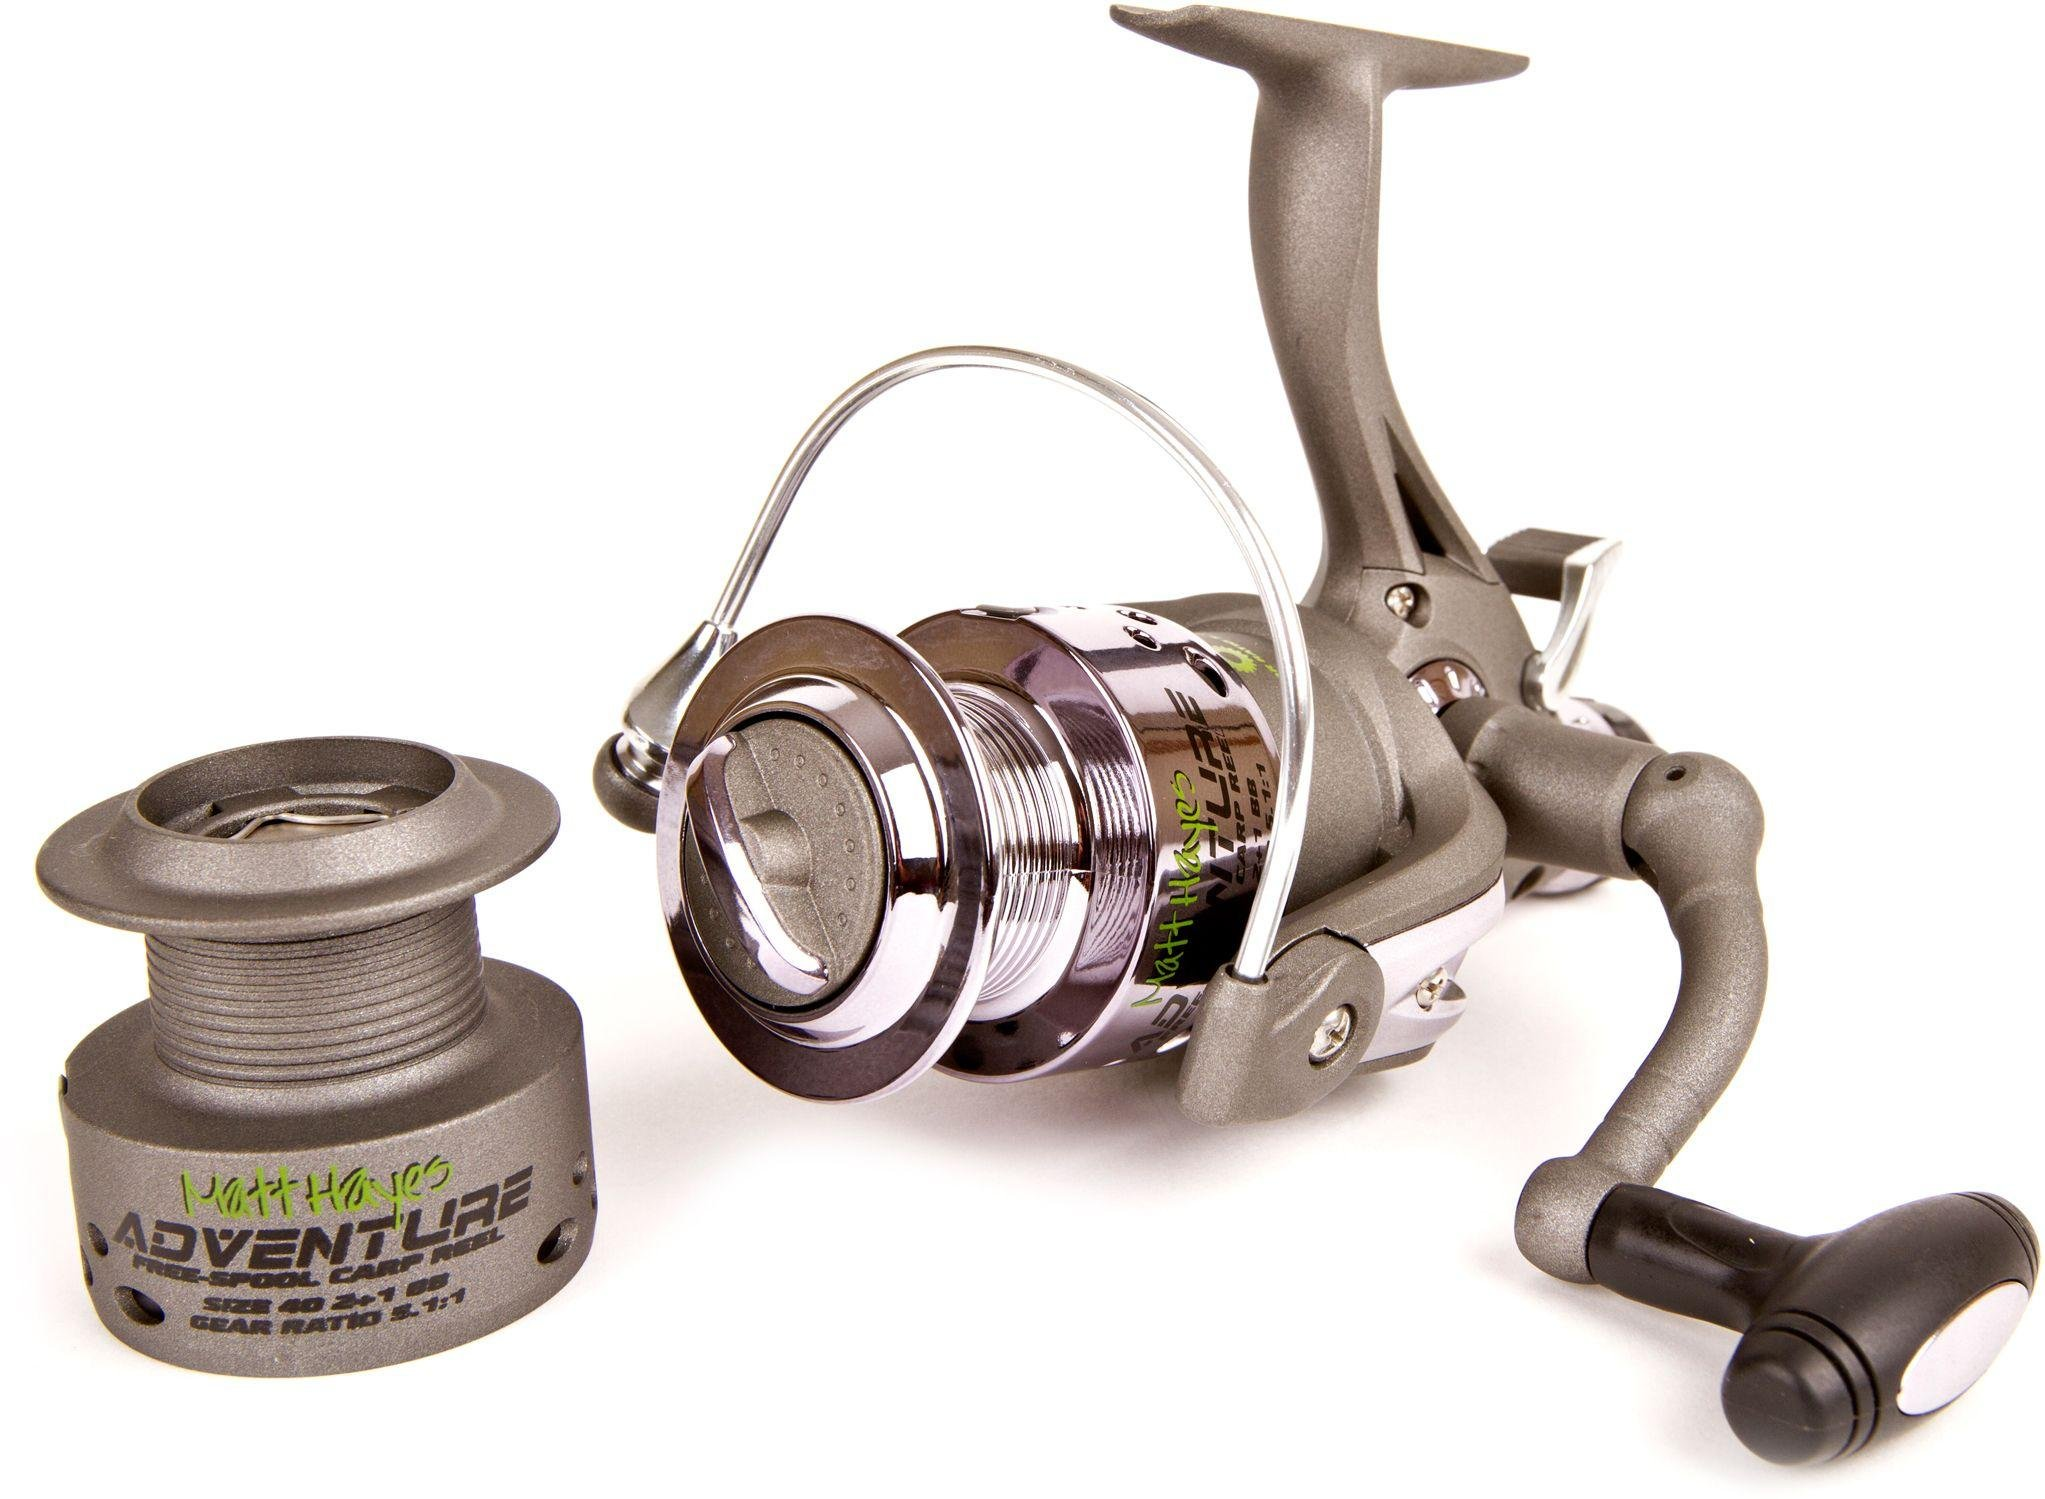 Matt Hayes Carp Fishing Reel - Size 40